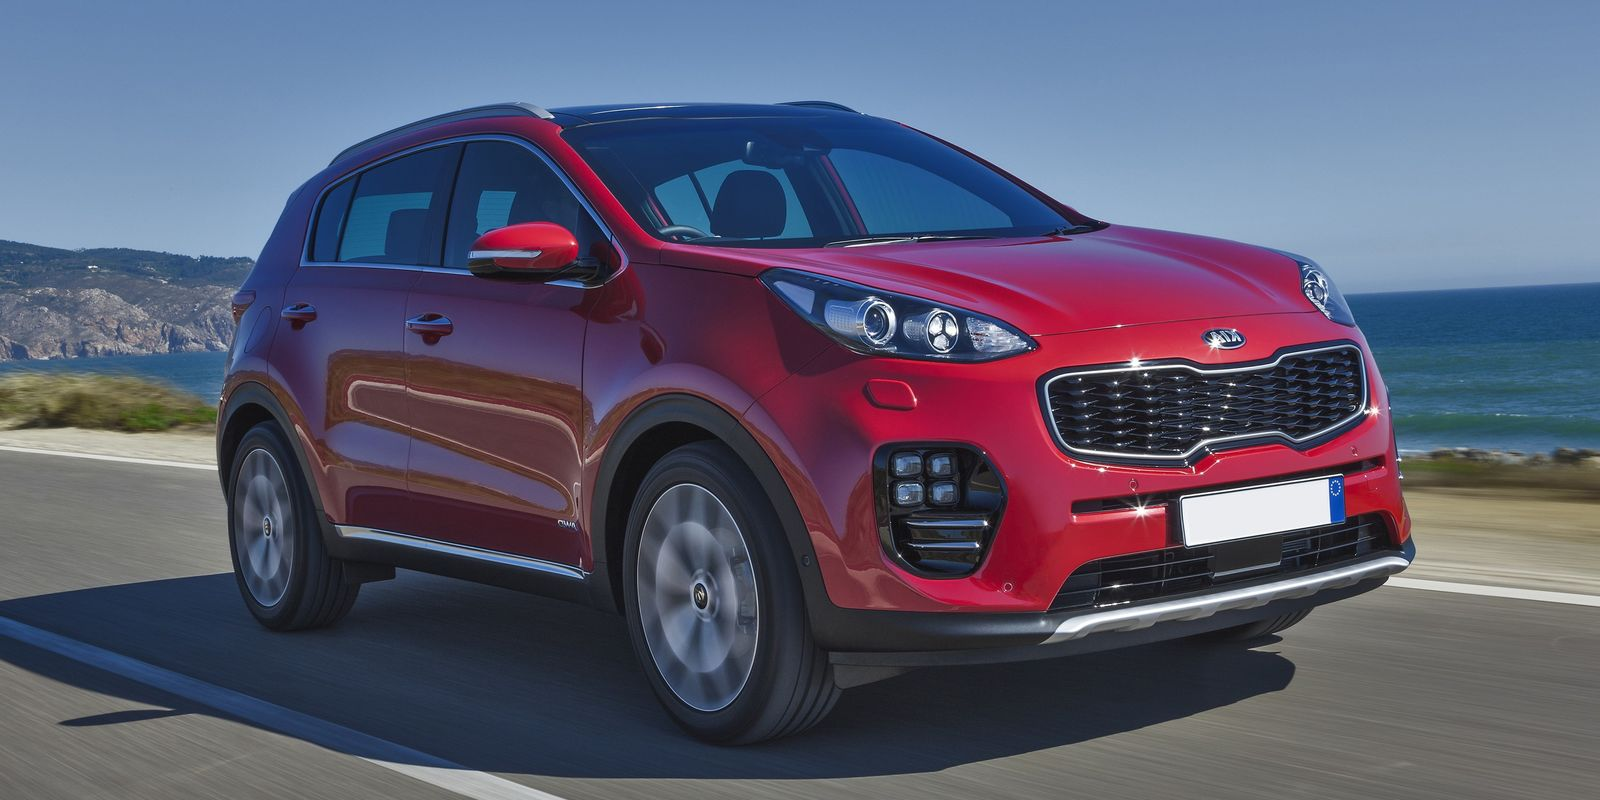 New sportage deals